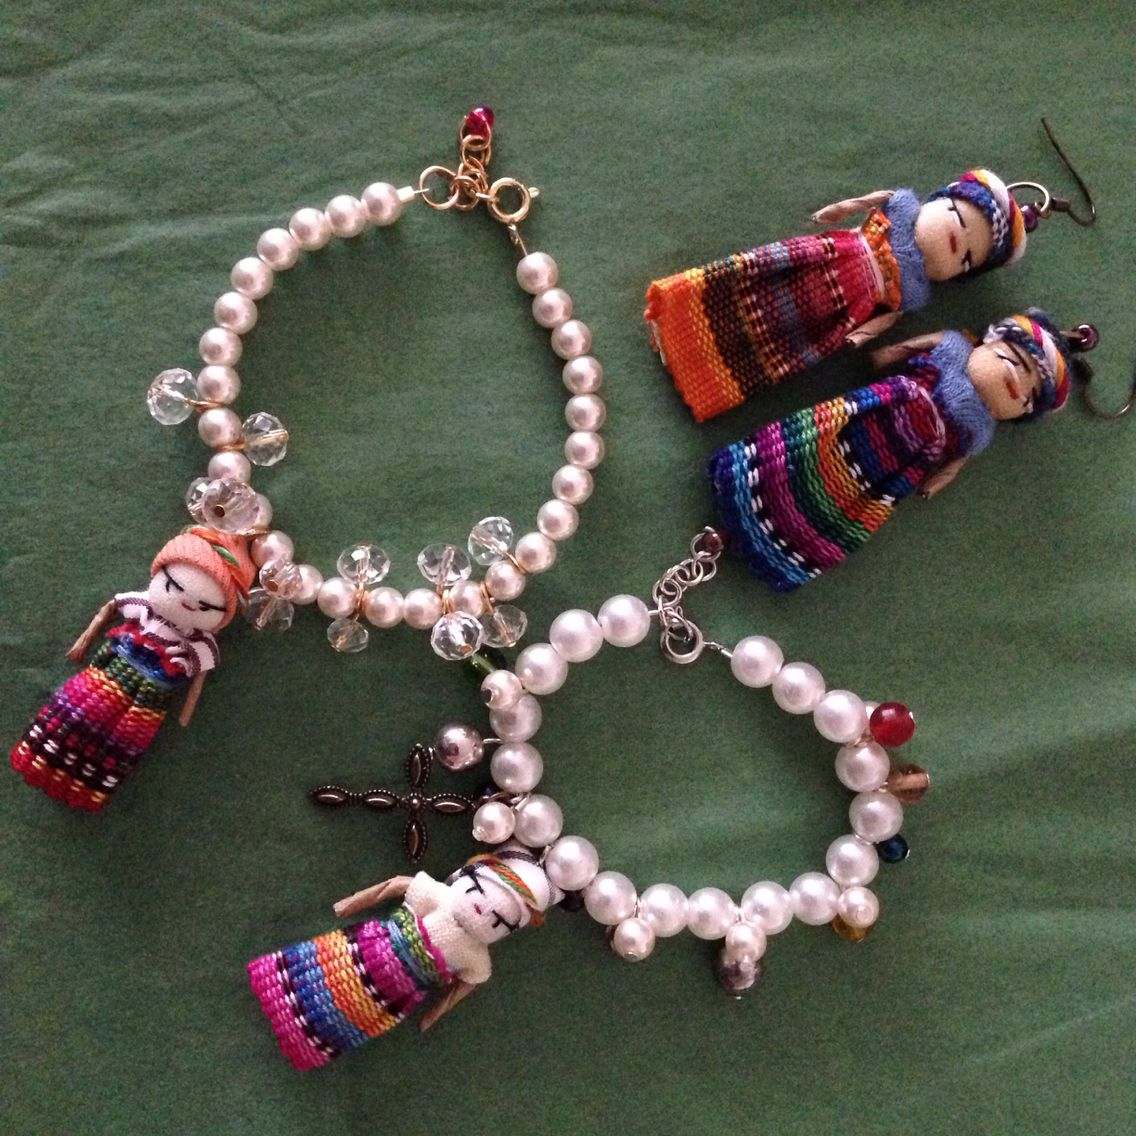 I sell guatemalan worry doll bracelets and earrings. Aliceprettyjewel@gmail.com to order or whatsapp 6026392209 Alice